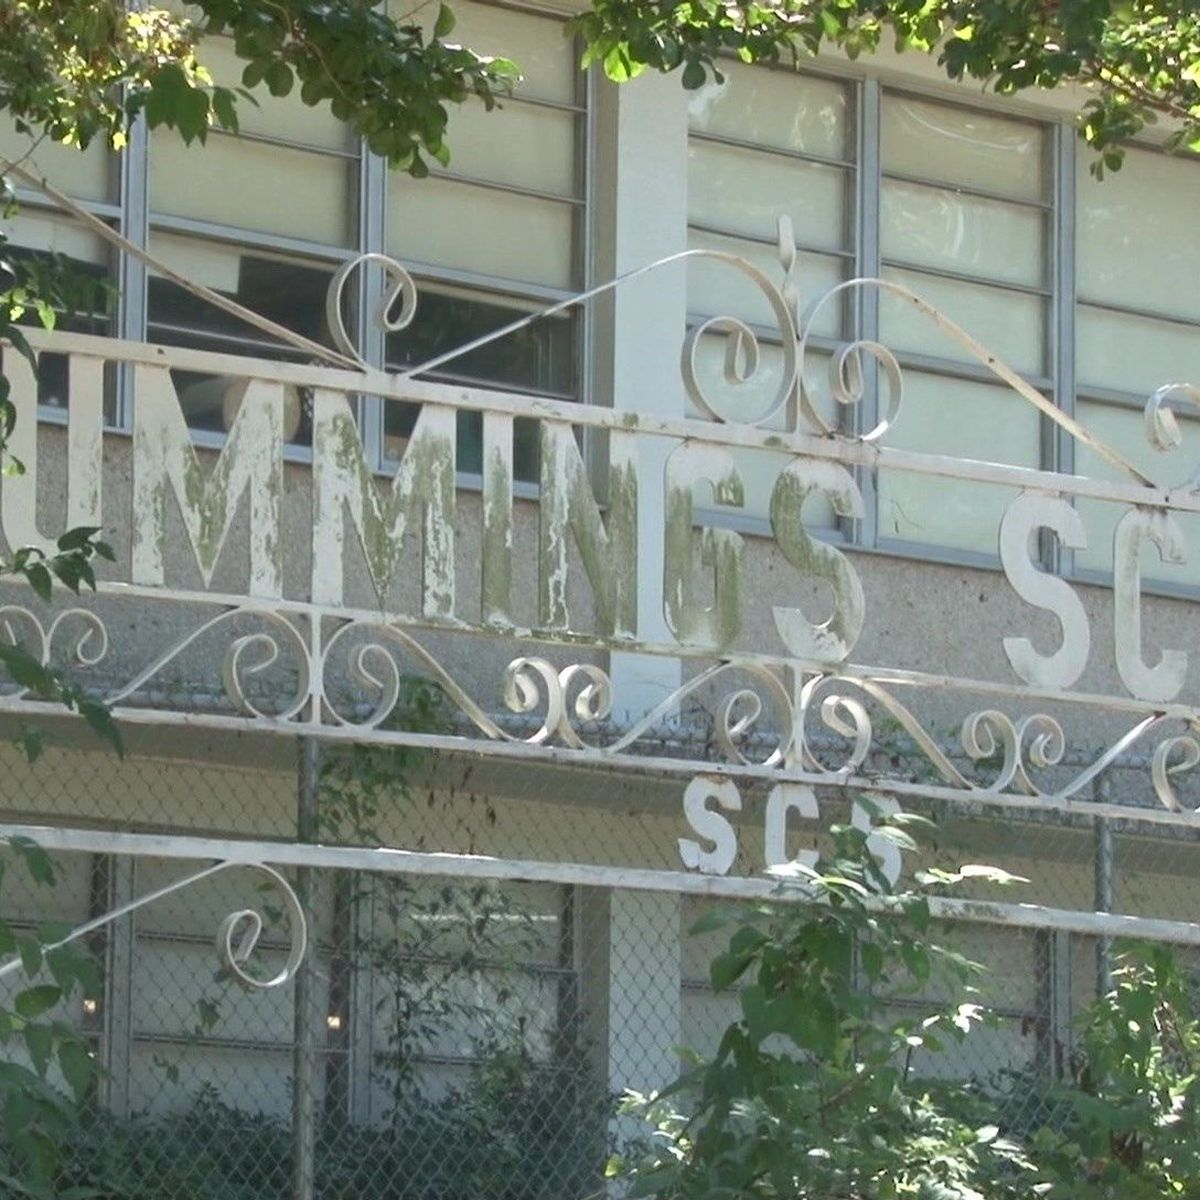 Police investigate bomb threat at Cummings Elementary